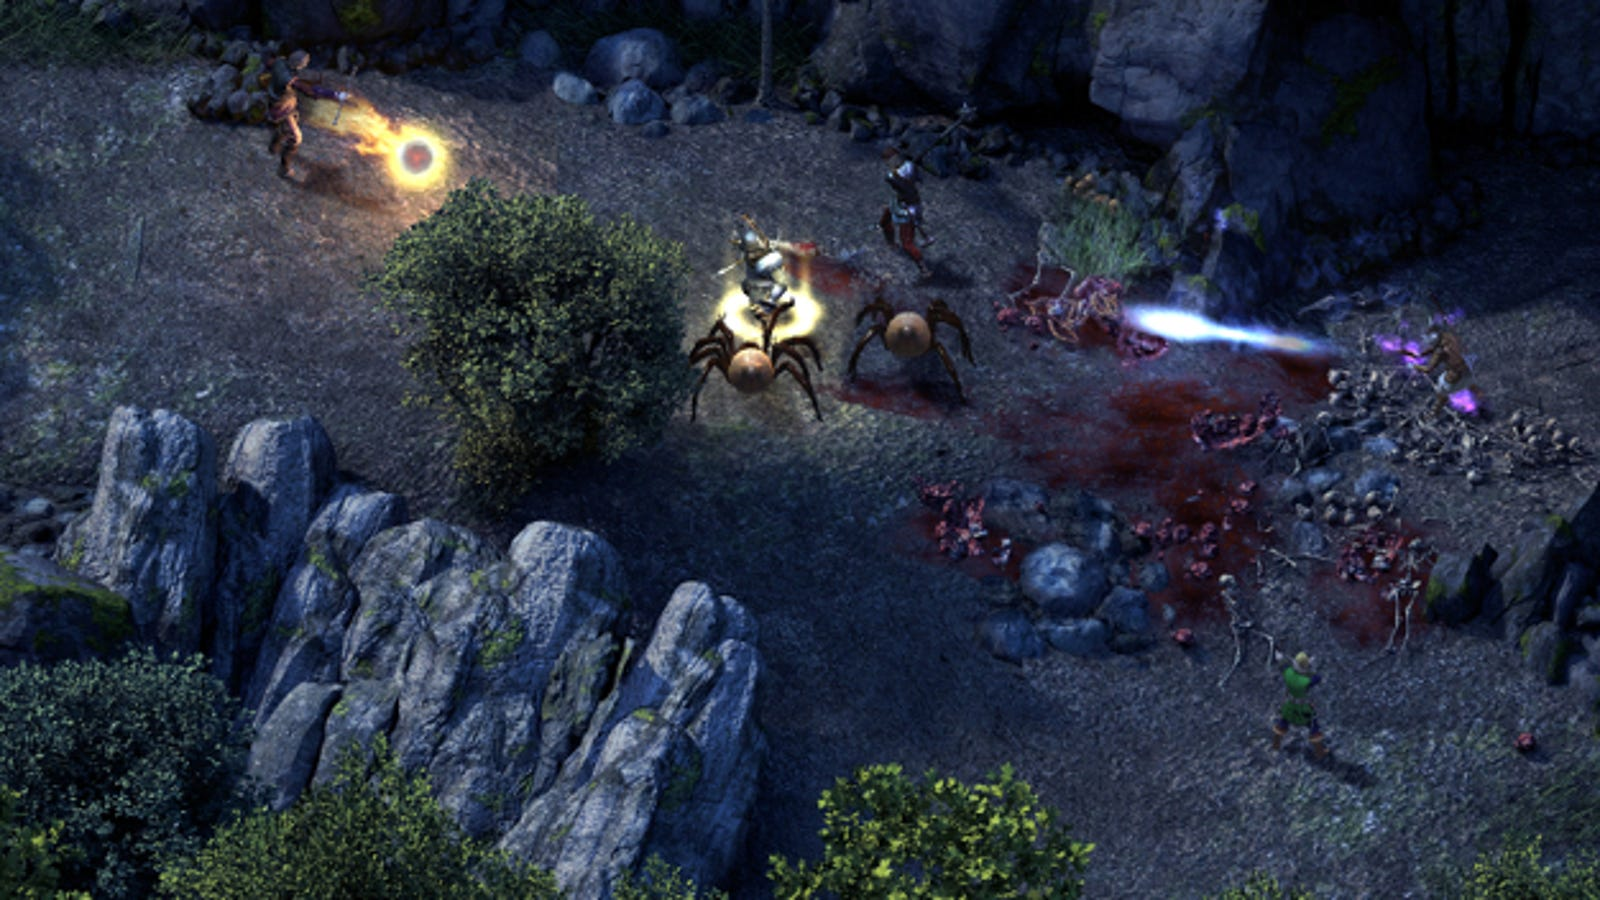 The Best Steam Guides For Pillars of Eternity